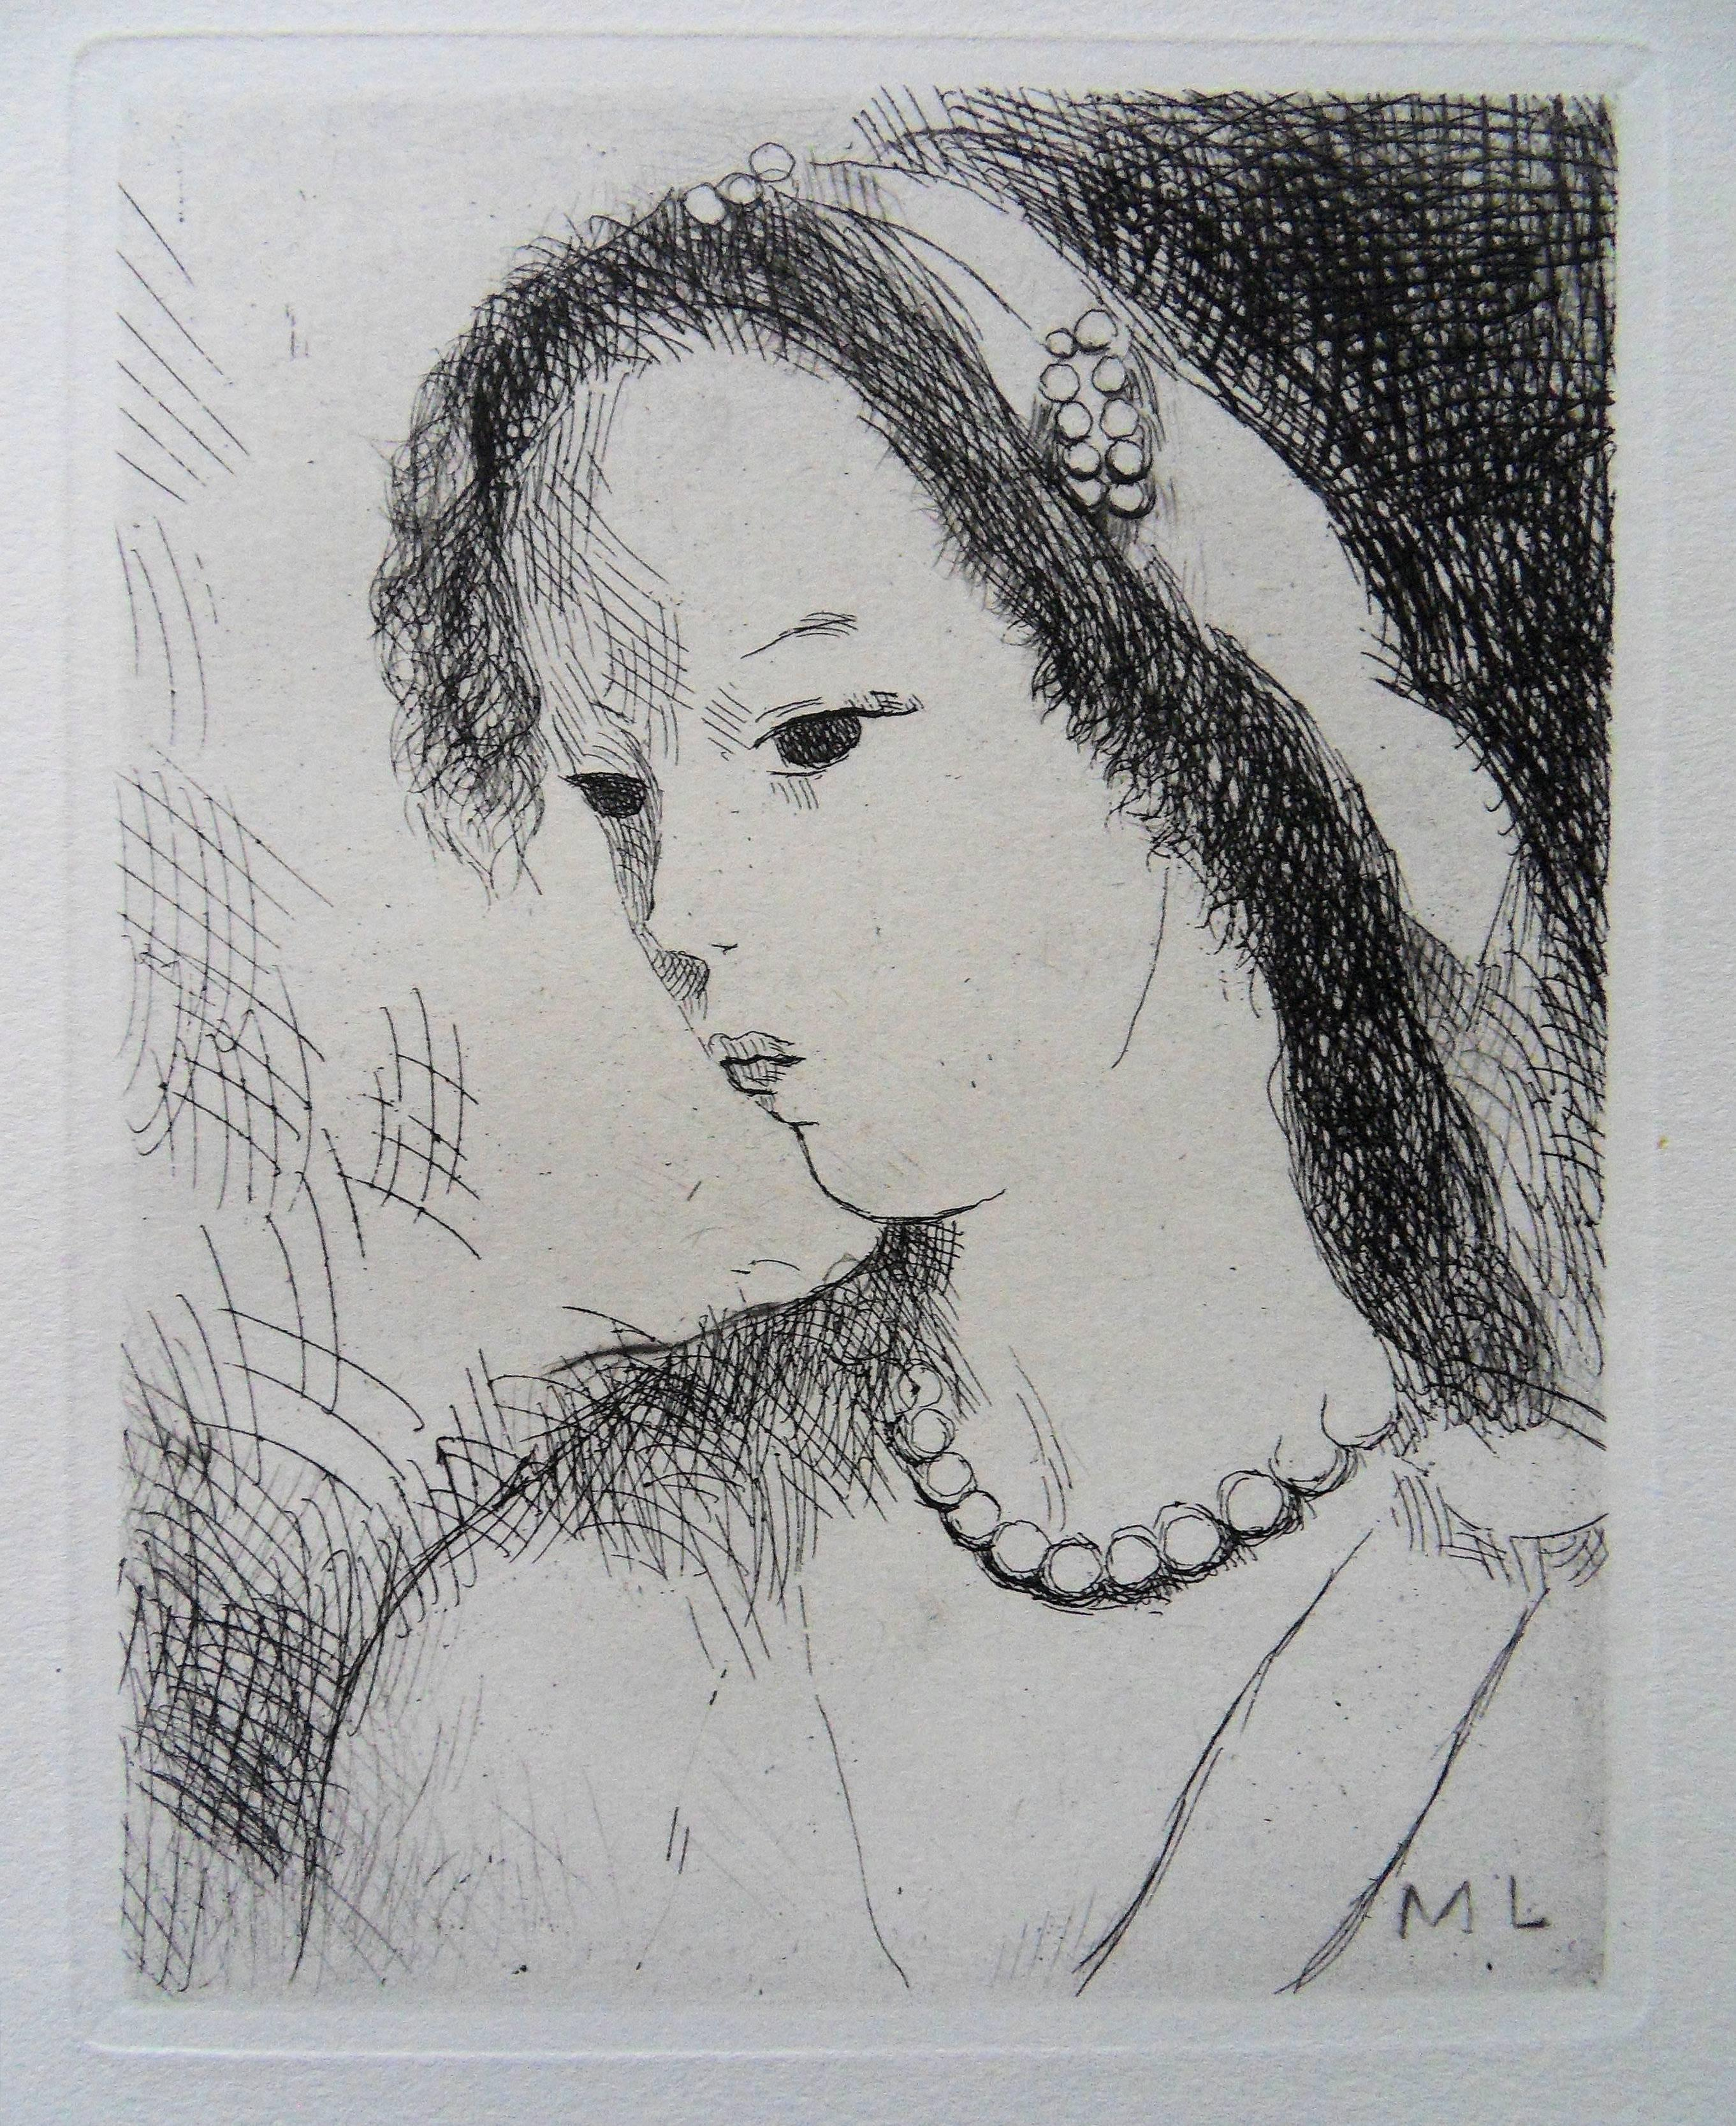 Young Girl with Pearl Necklace - Original etching, 1943